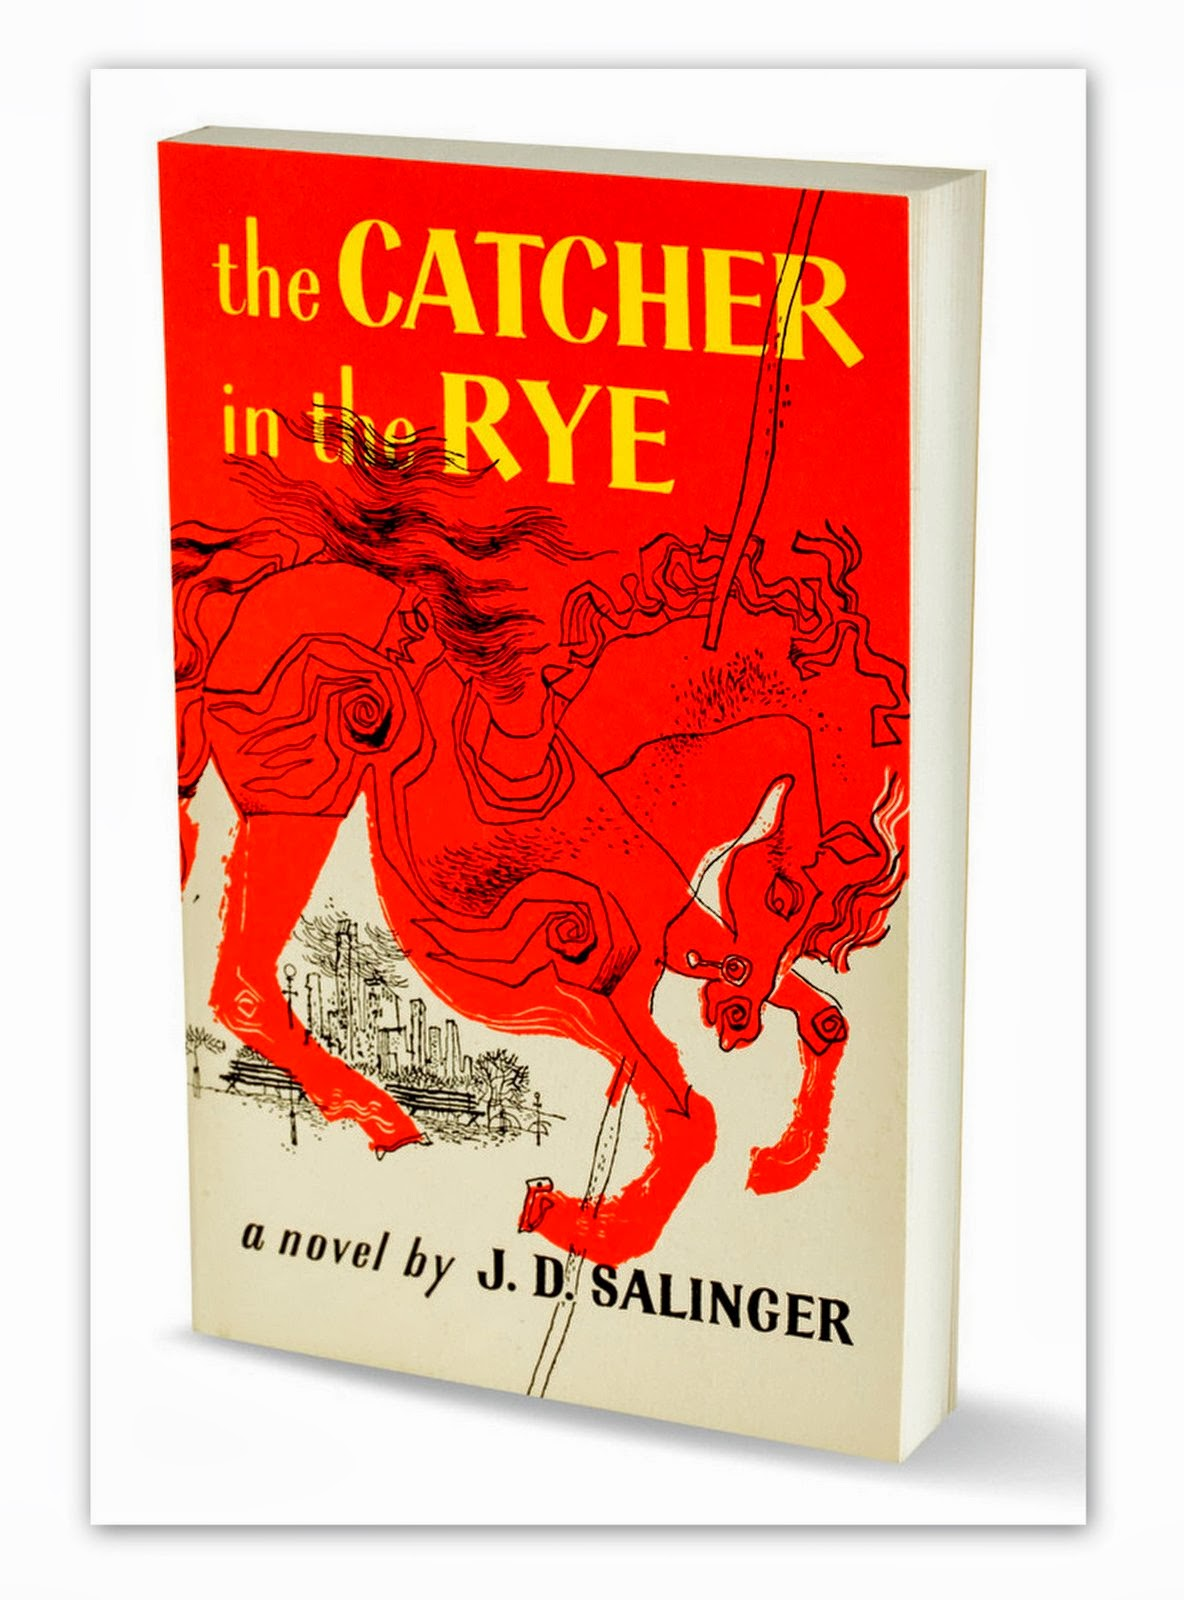 An overview of the first person narration in the novel the catcher in the rye by j d salinger